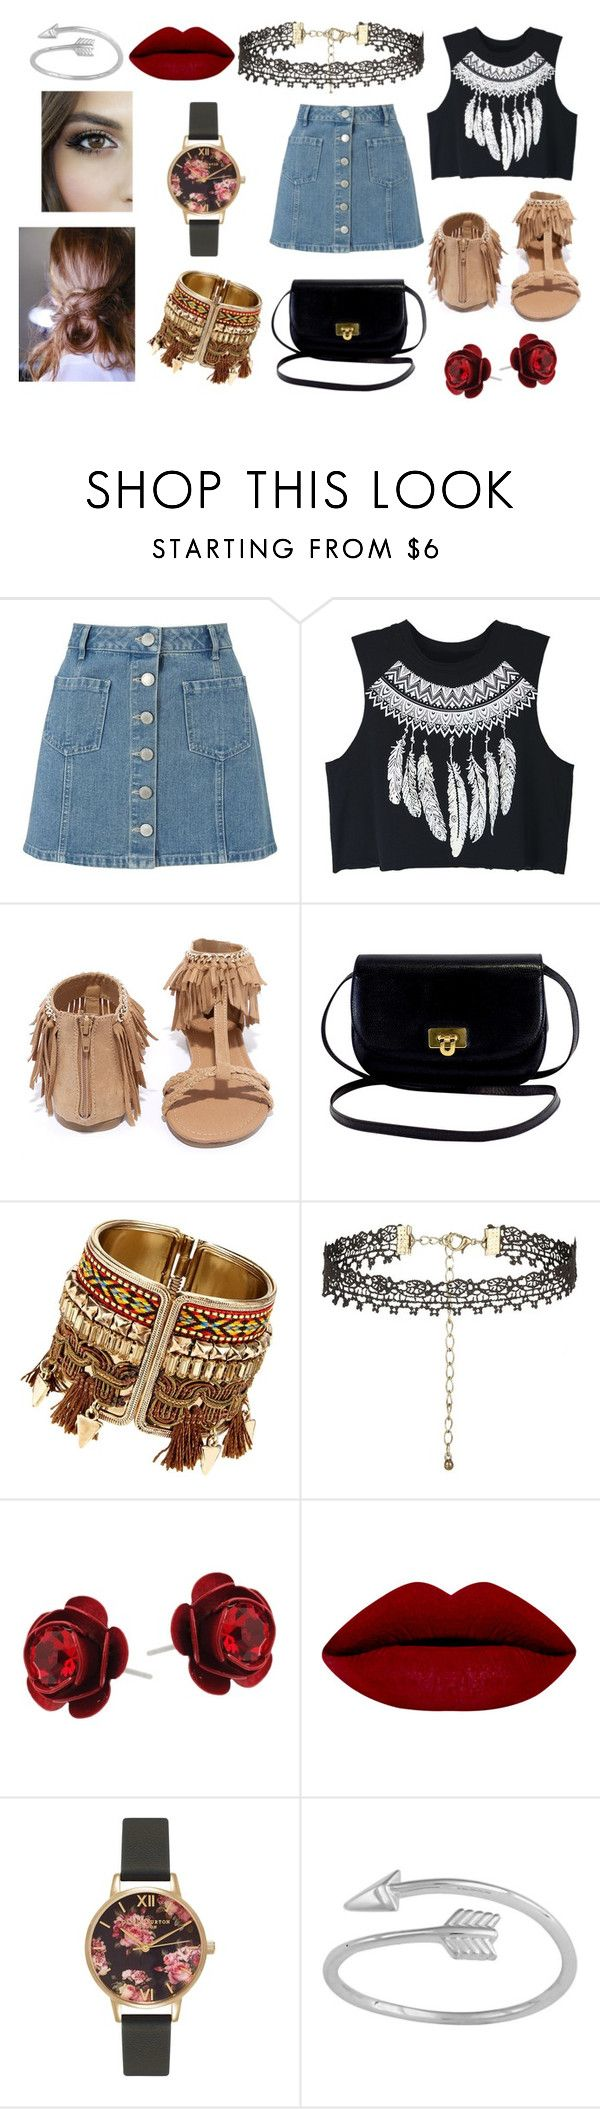 """""""Untitled #67"""" by zahlia-tibbs on Polyvore featuring Miss Selfridge, WithChic, Qupid, Michal Negrin, Olivia Burton and Midsummer Star"""